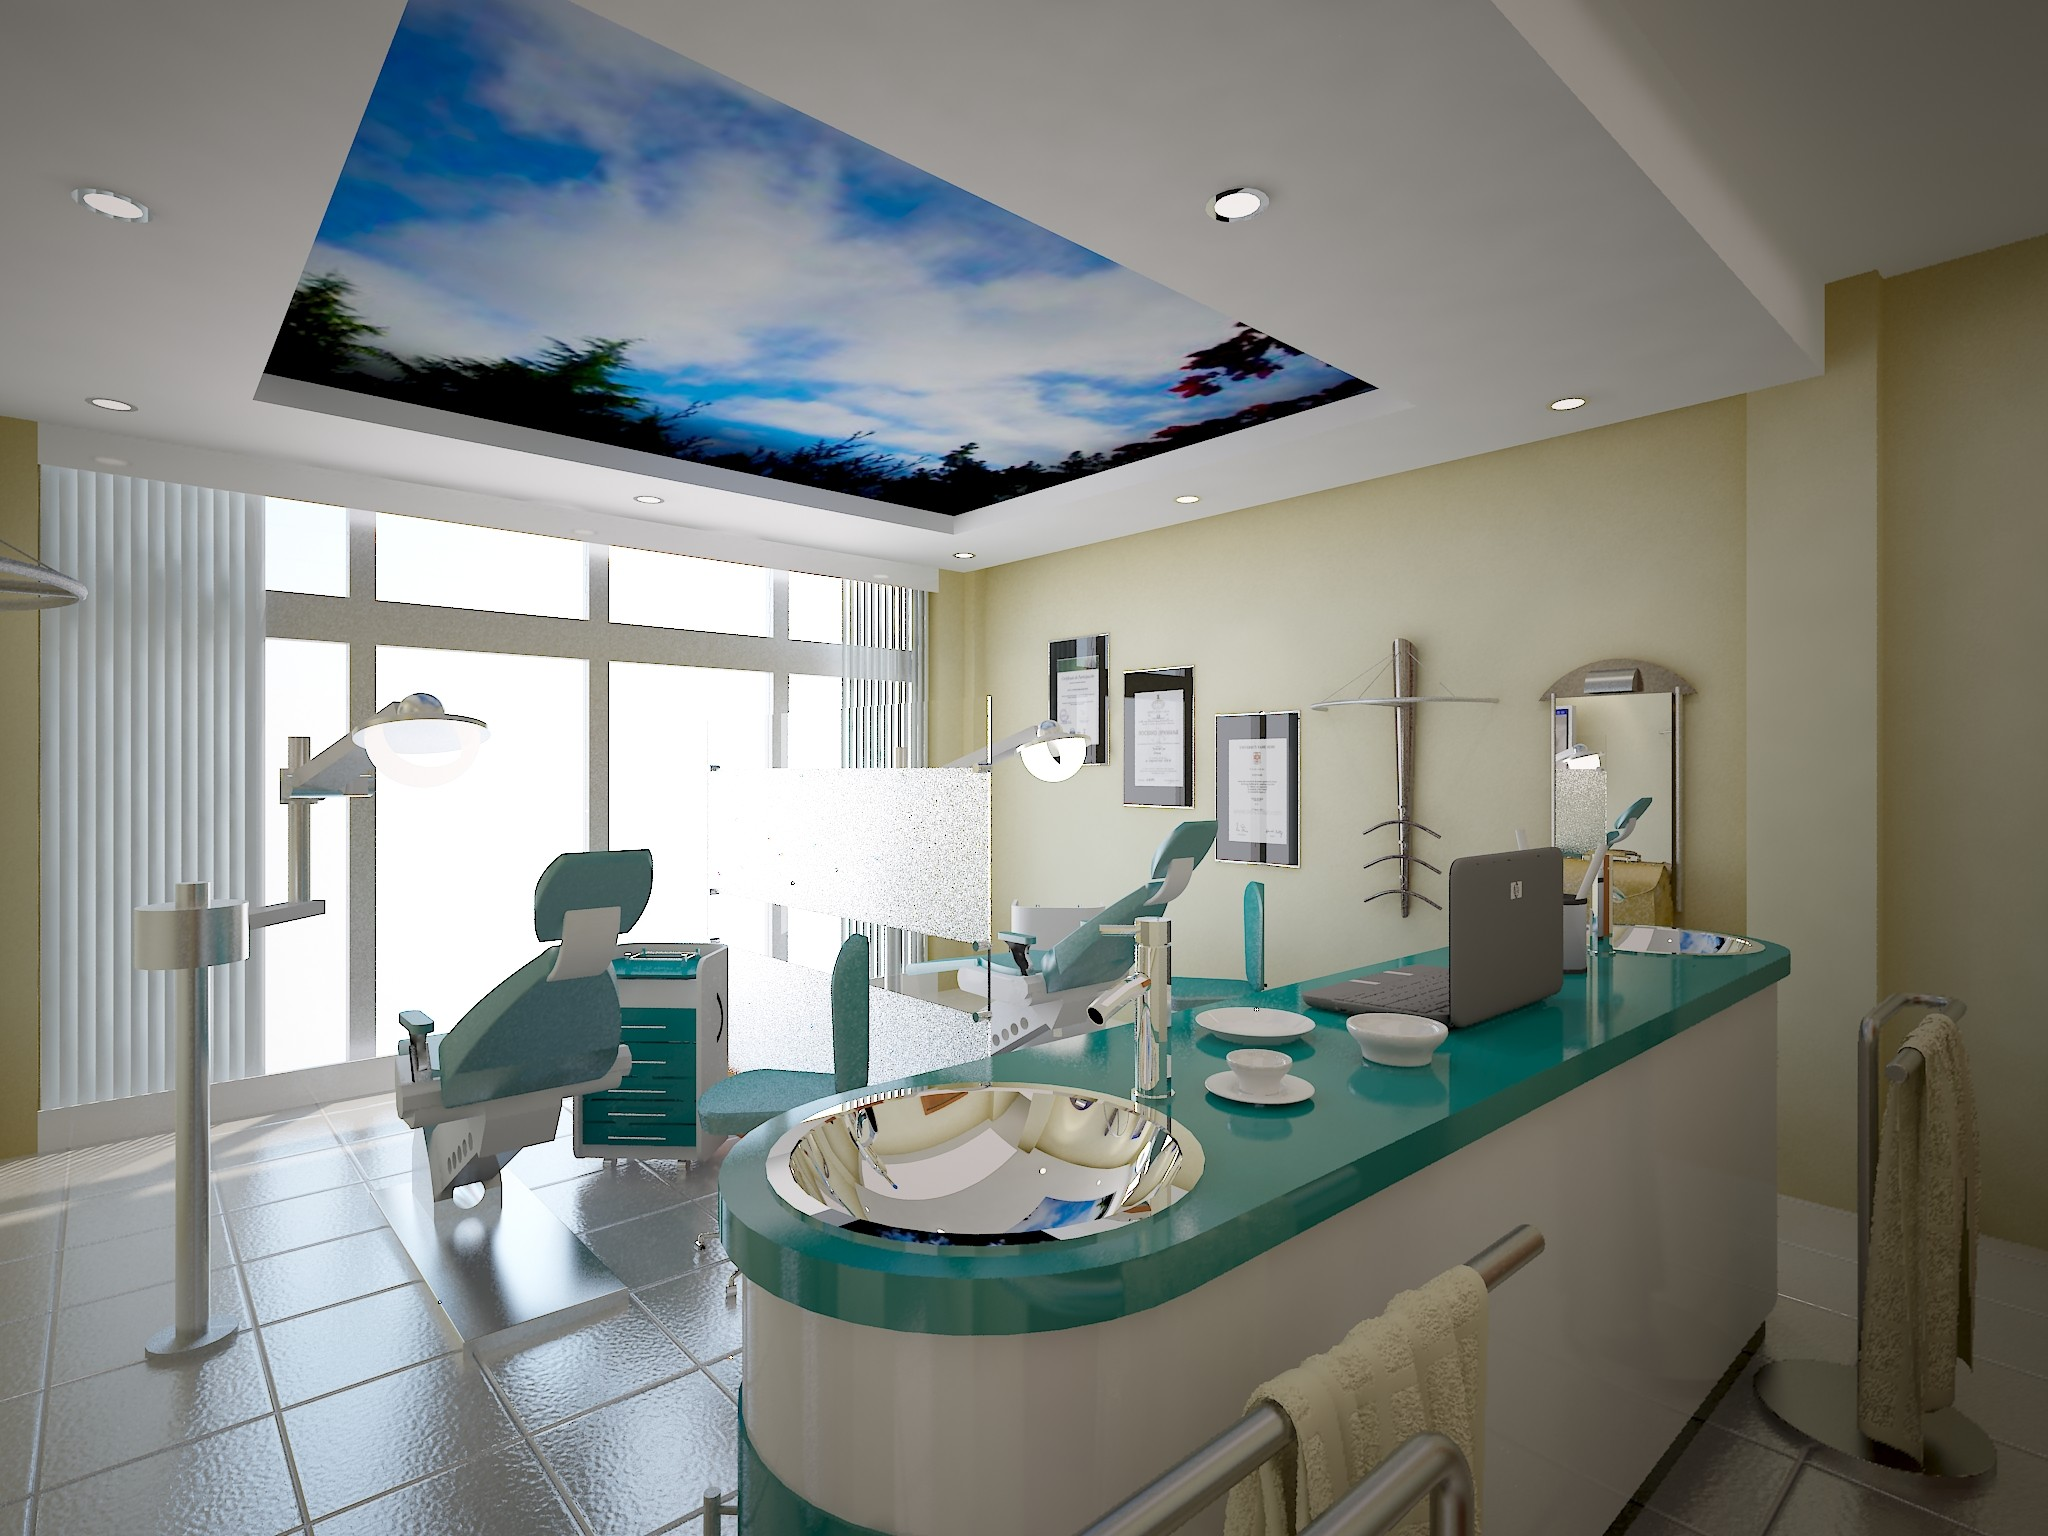 best dental office design. 2048x1536 144 Best Dental Office Images On Pinterest | Designs, Clinic Design And